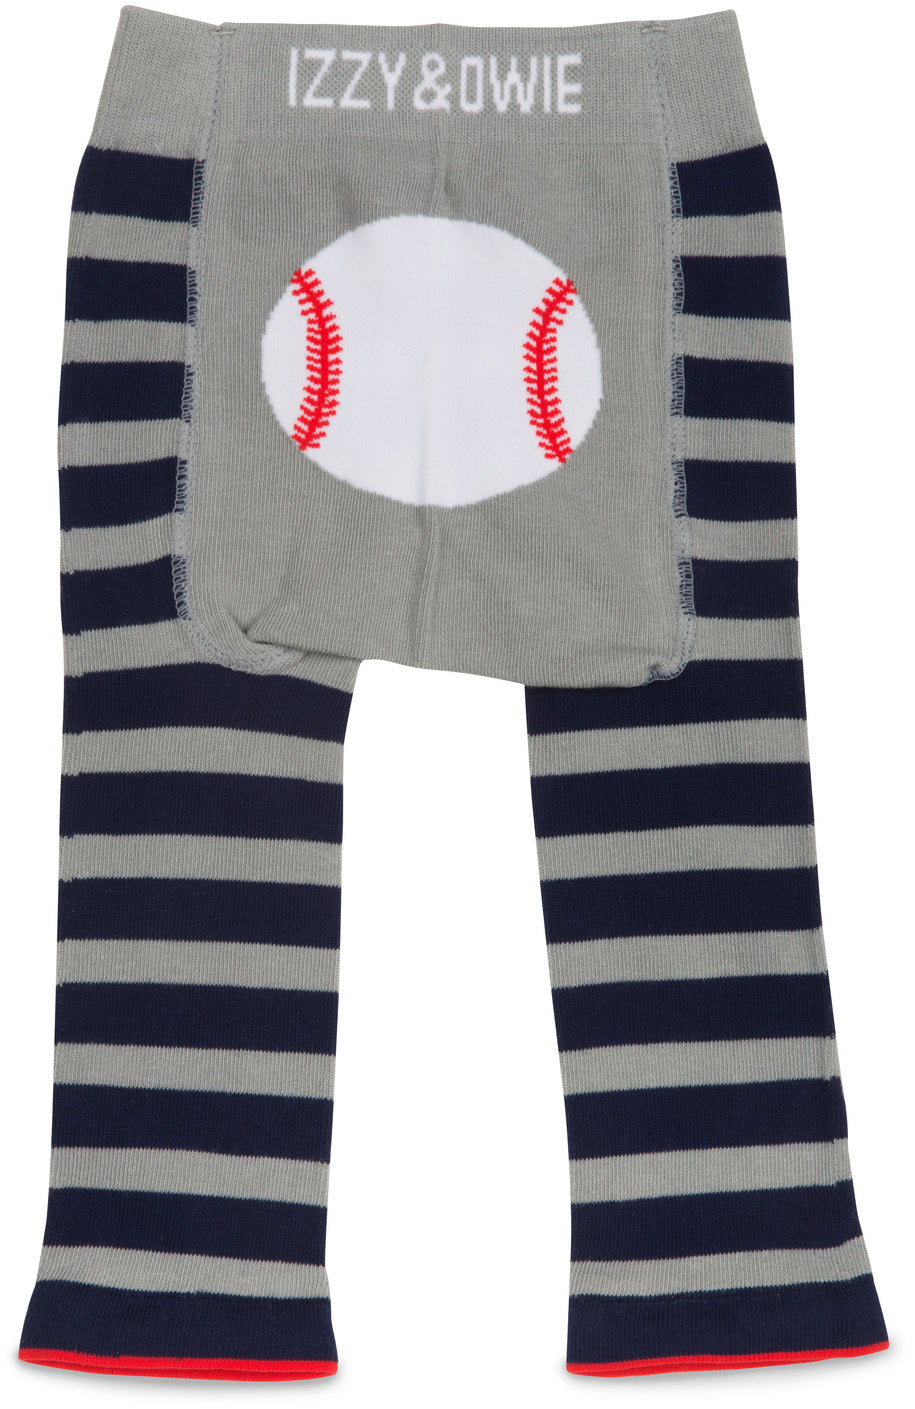 Blue and Gray Baseball Leggings Baby Leggings Izzy & Owie - GigglesGear.com